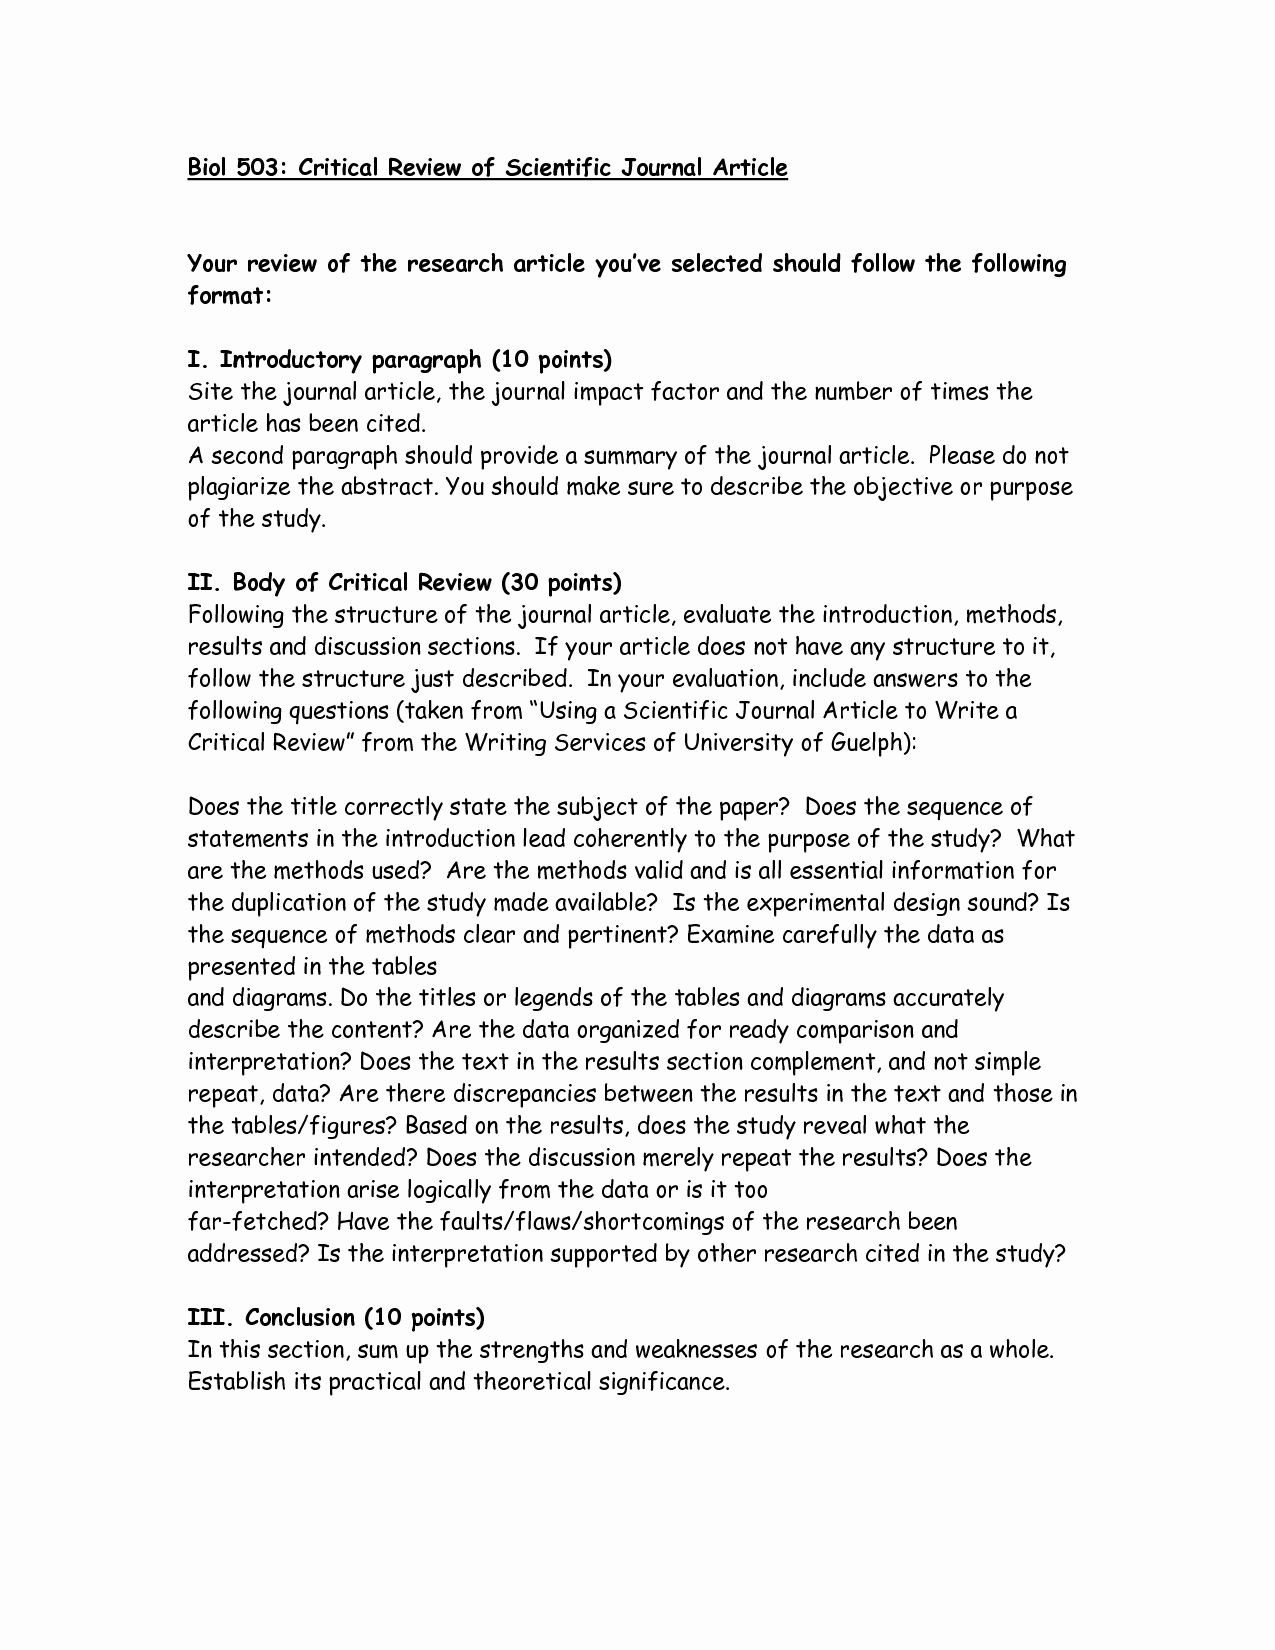 Journal Article Summary Example New Critical Critique Article Review Pinterest Scientific Journal Articles Cover Letter For Resume Introductory Paragraph